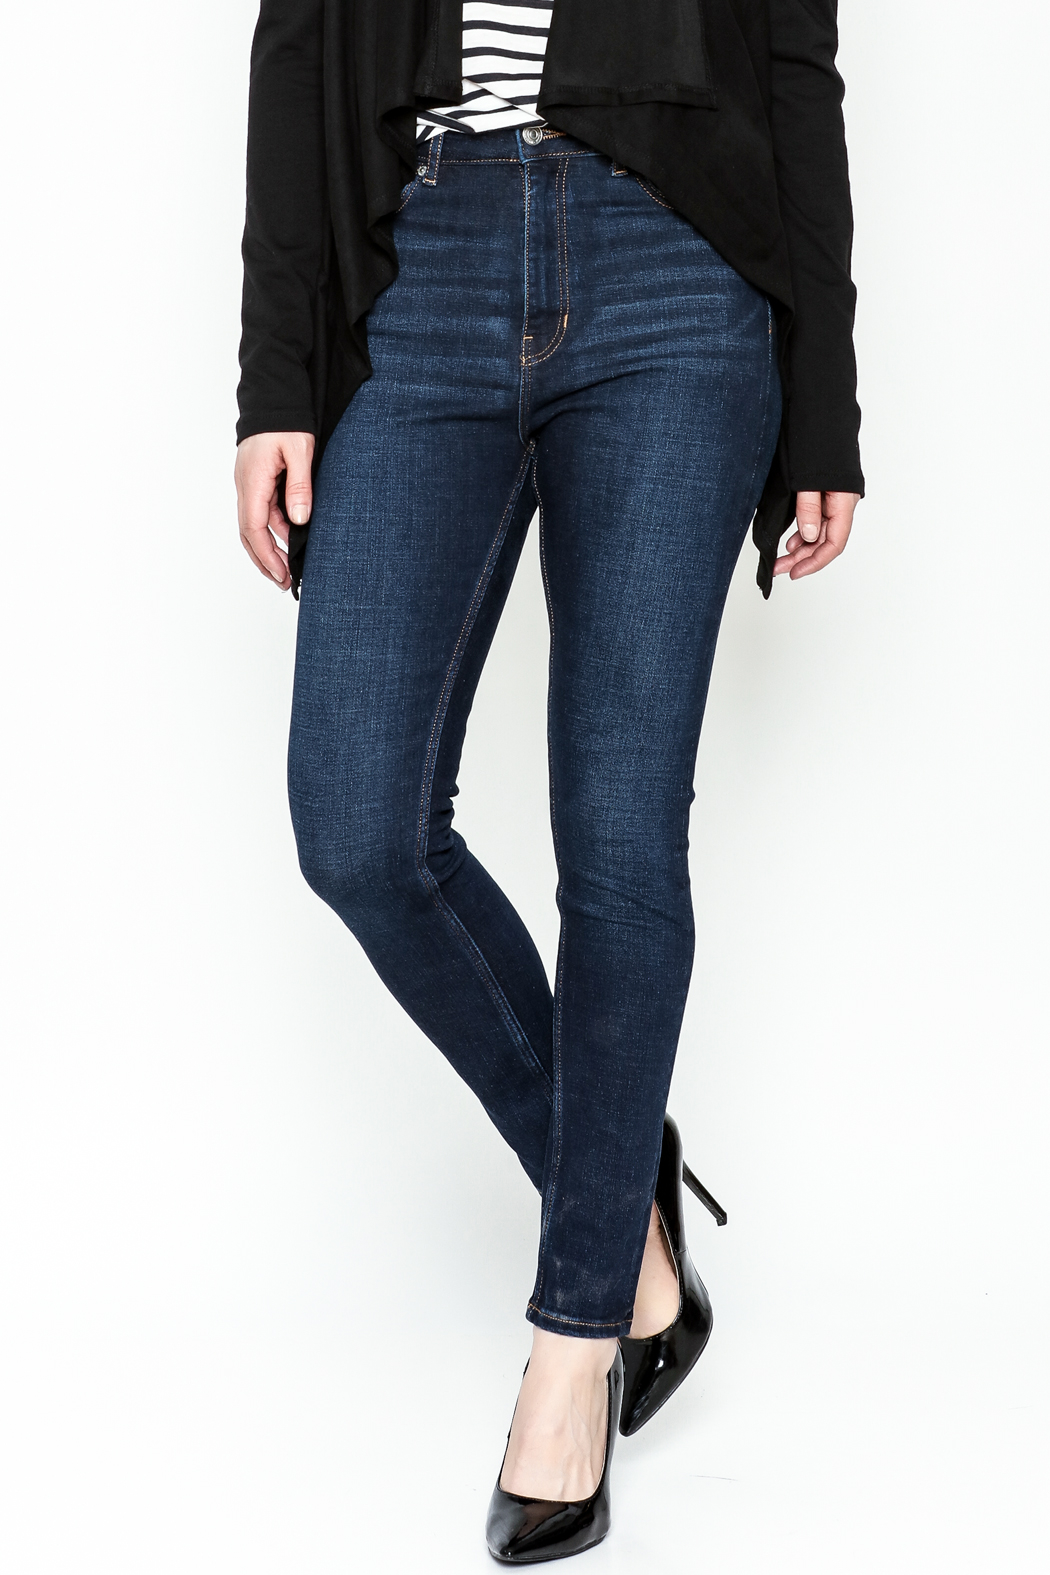 DL 1961 Florence Jeans - Main Image